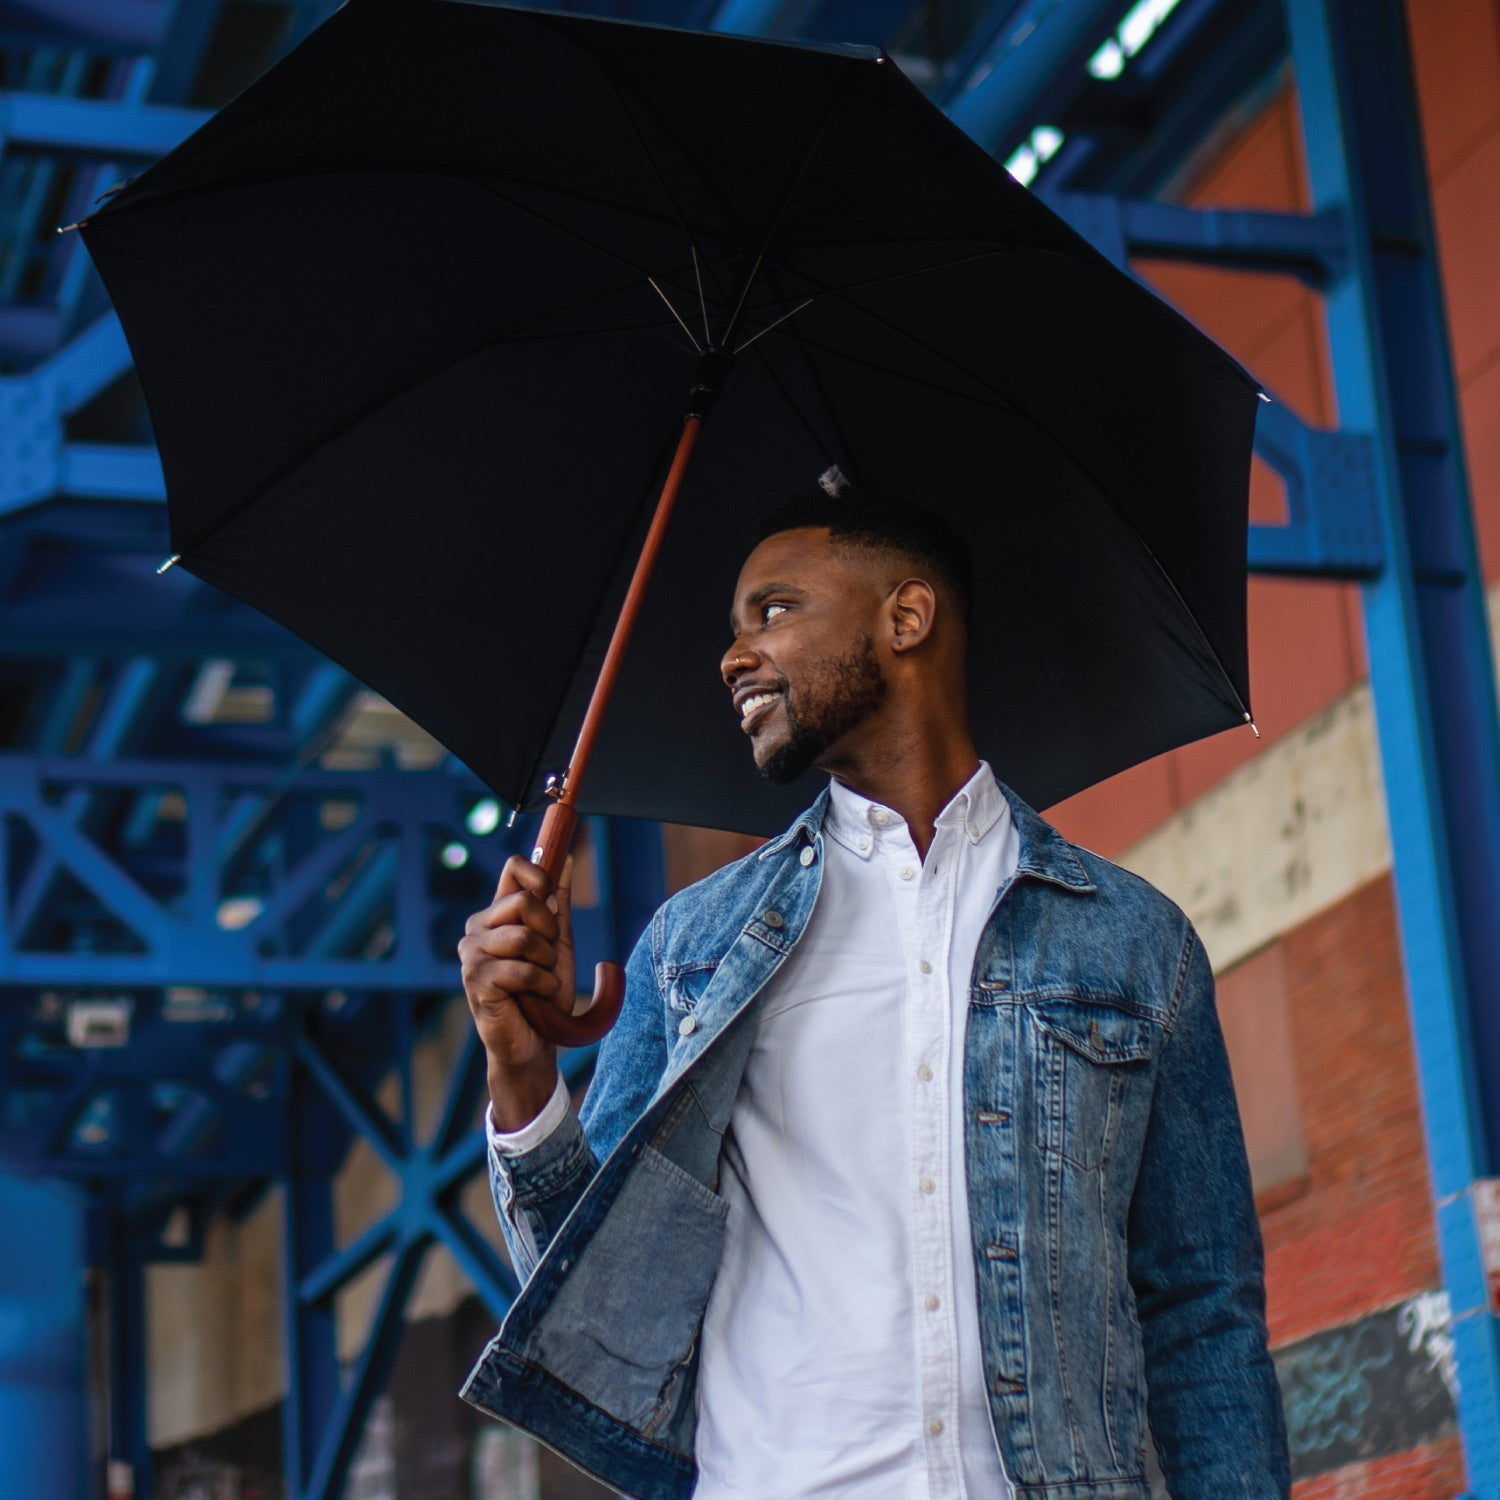 Male model holding a stick umbrella over his head under city scaffolding